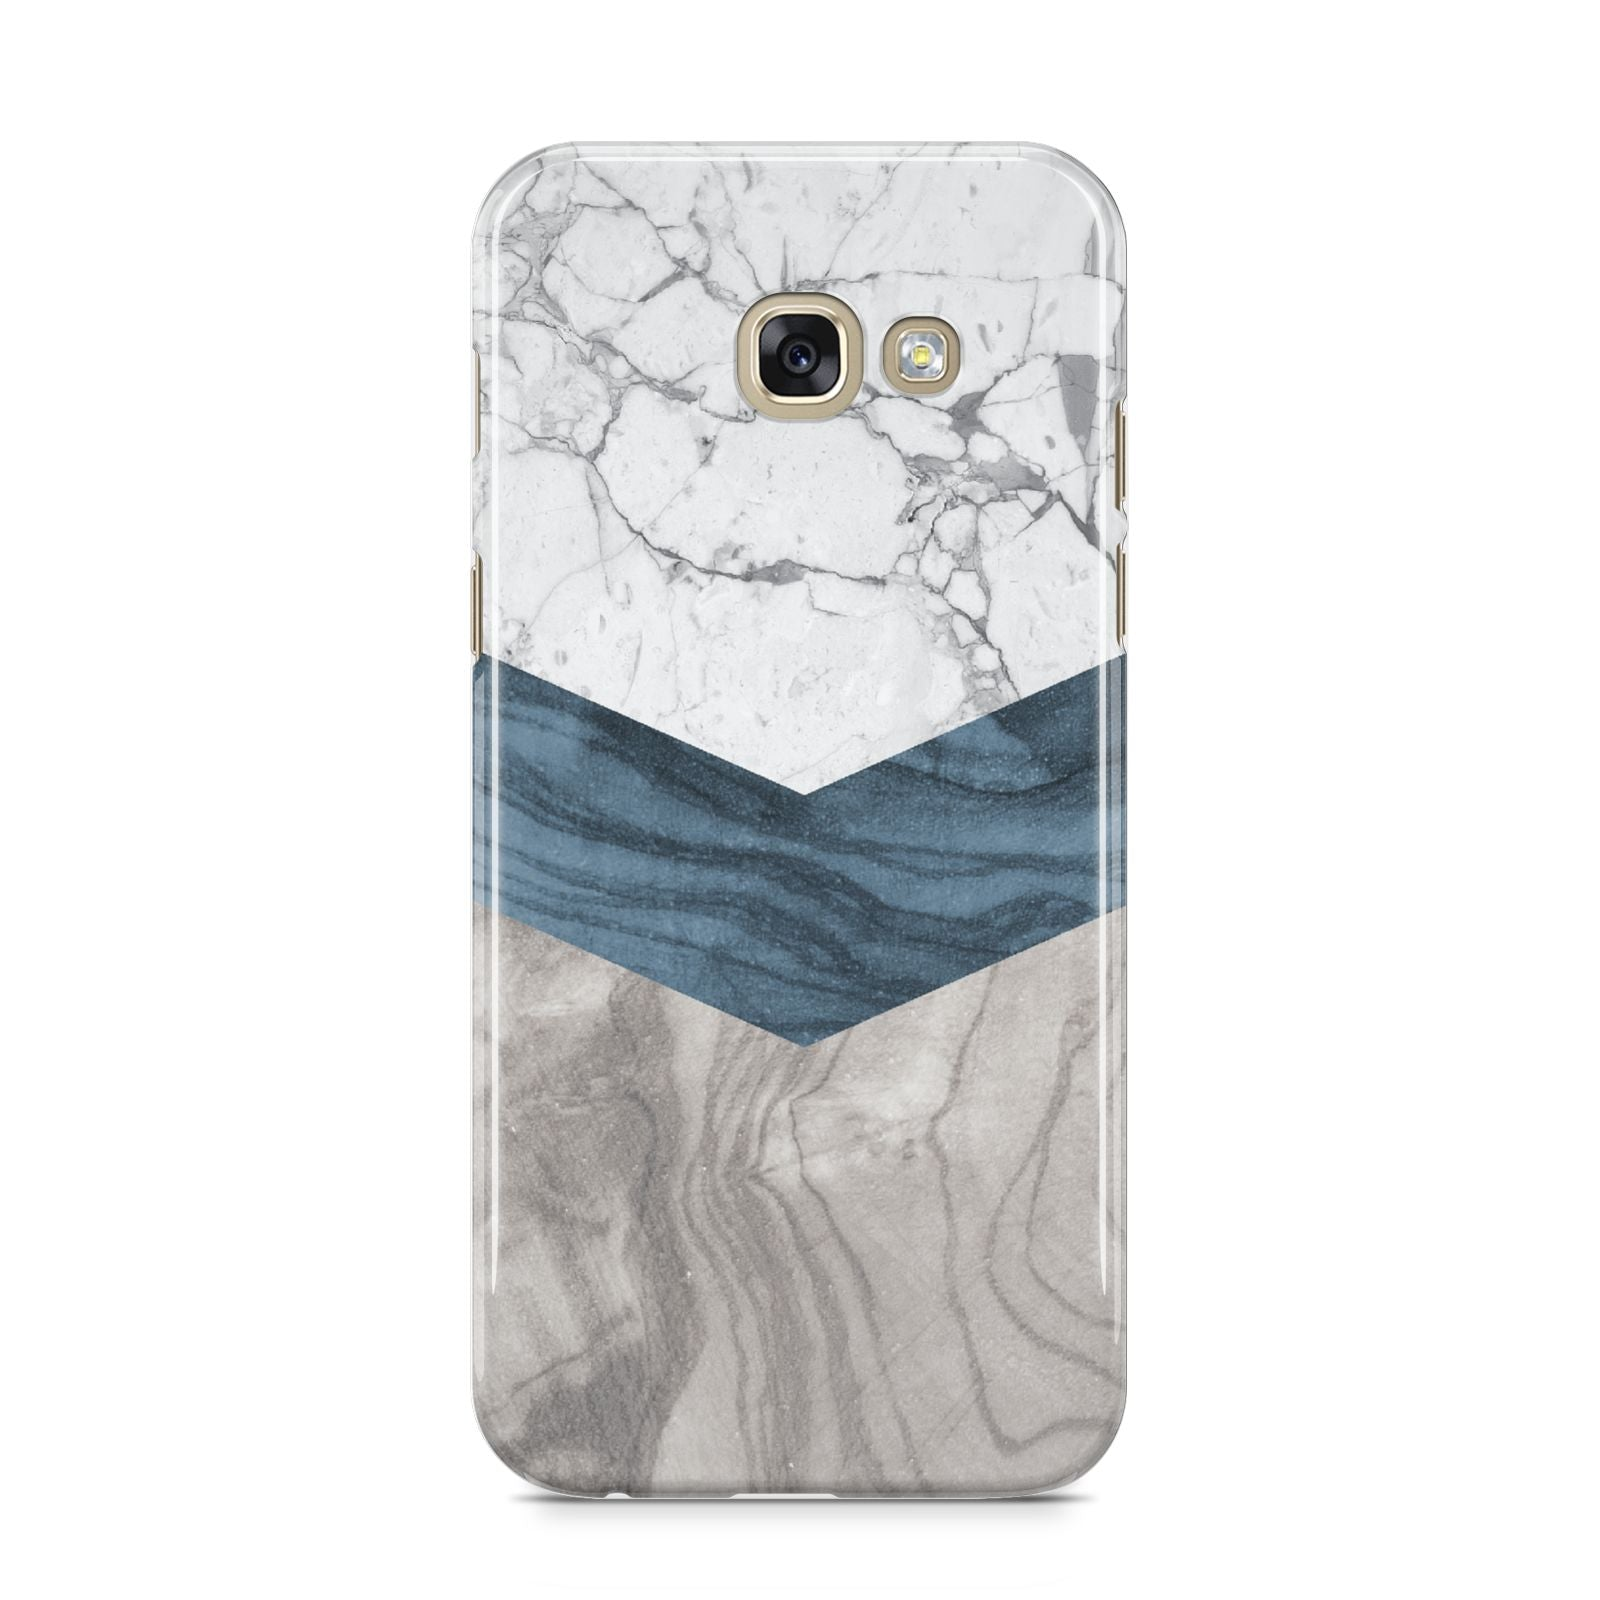 Marble Wood Geometric 8 Samsung Galaxy A5 2017 Case on gold phone